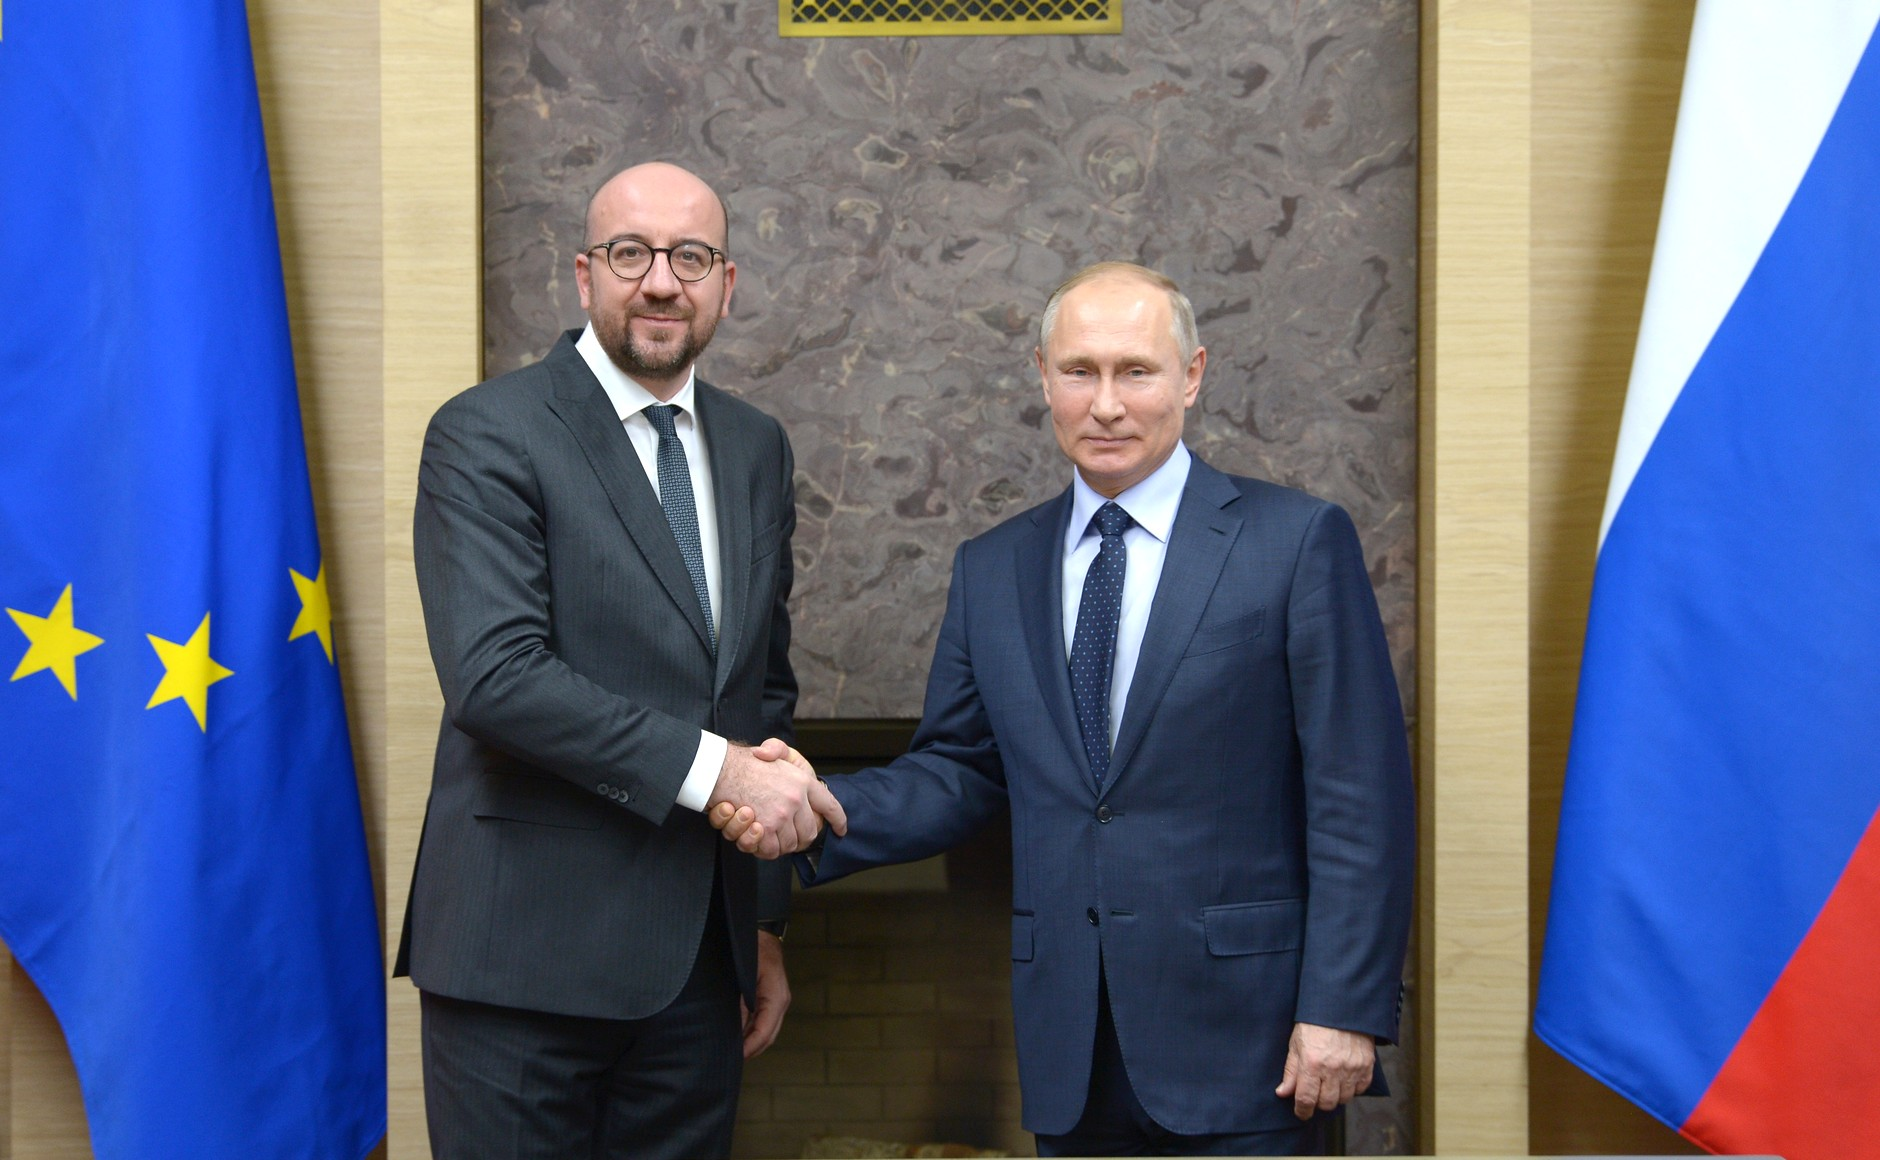 Datei:Vladimir Putin and Charles Michel (2018-01-31) 01.jpg – Wikipedia